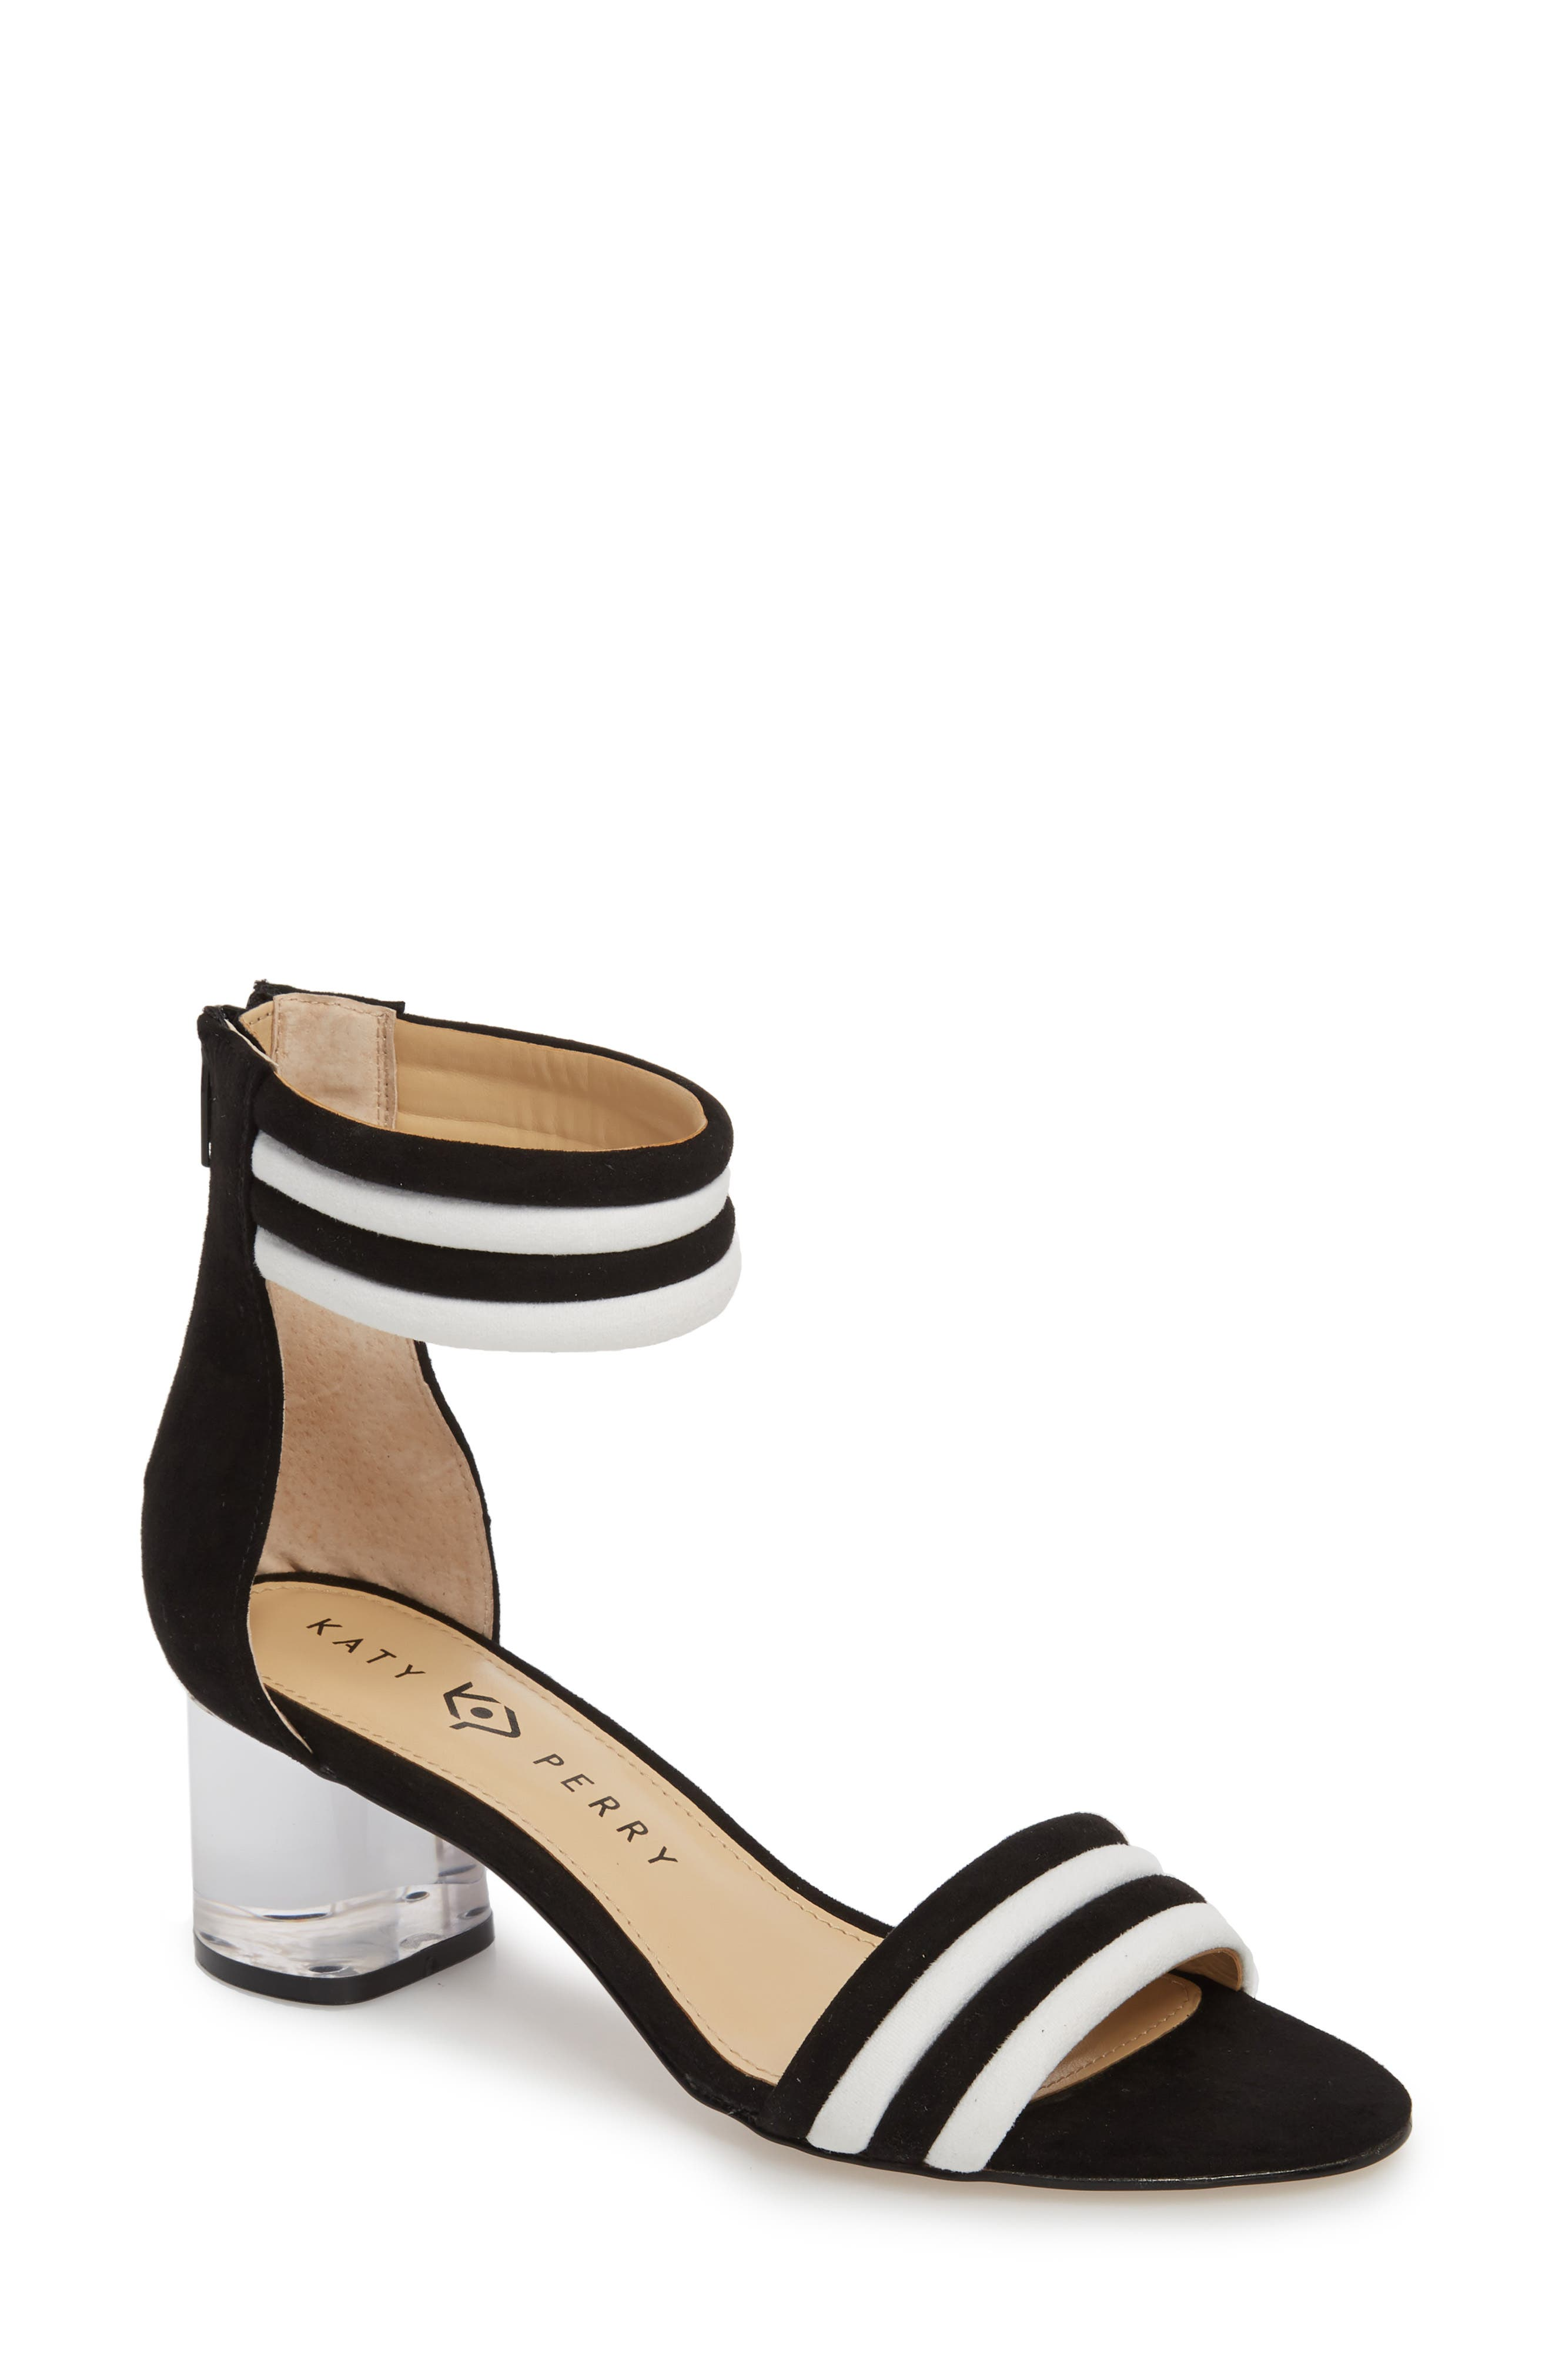 Katy perry Women's Tube Strap Sandal